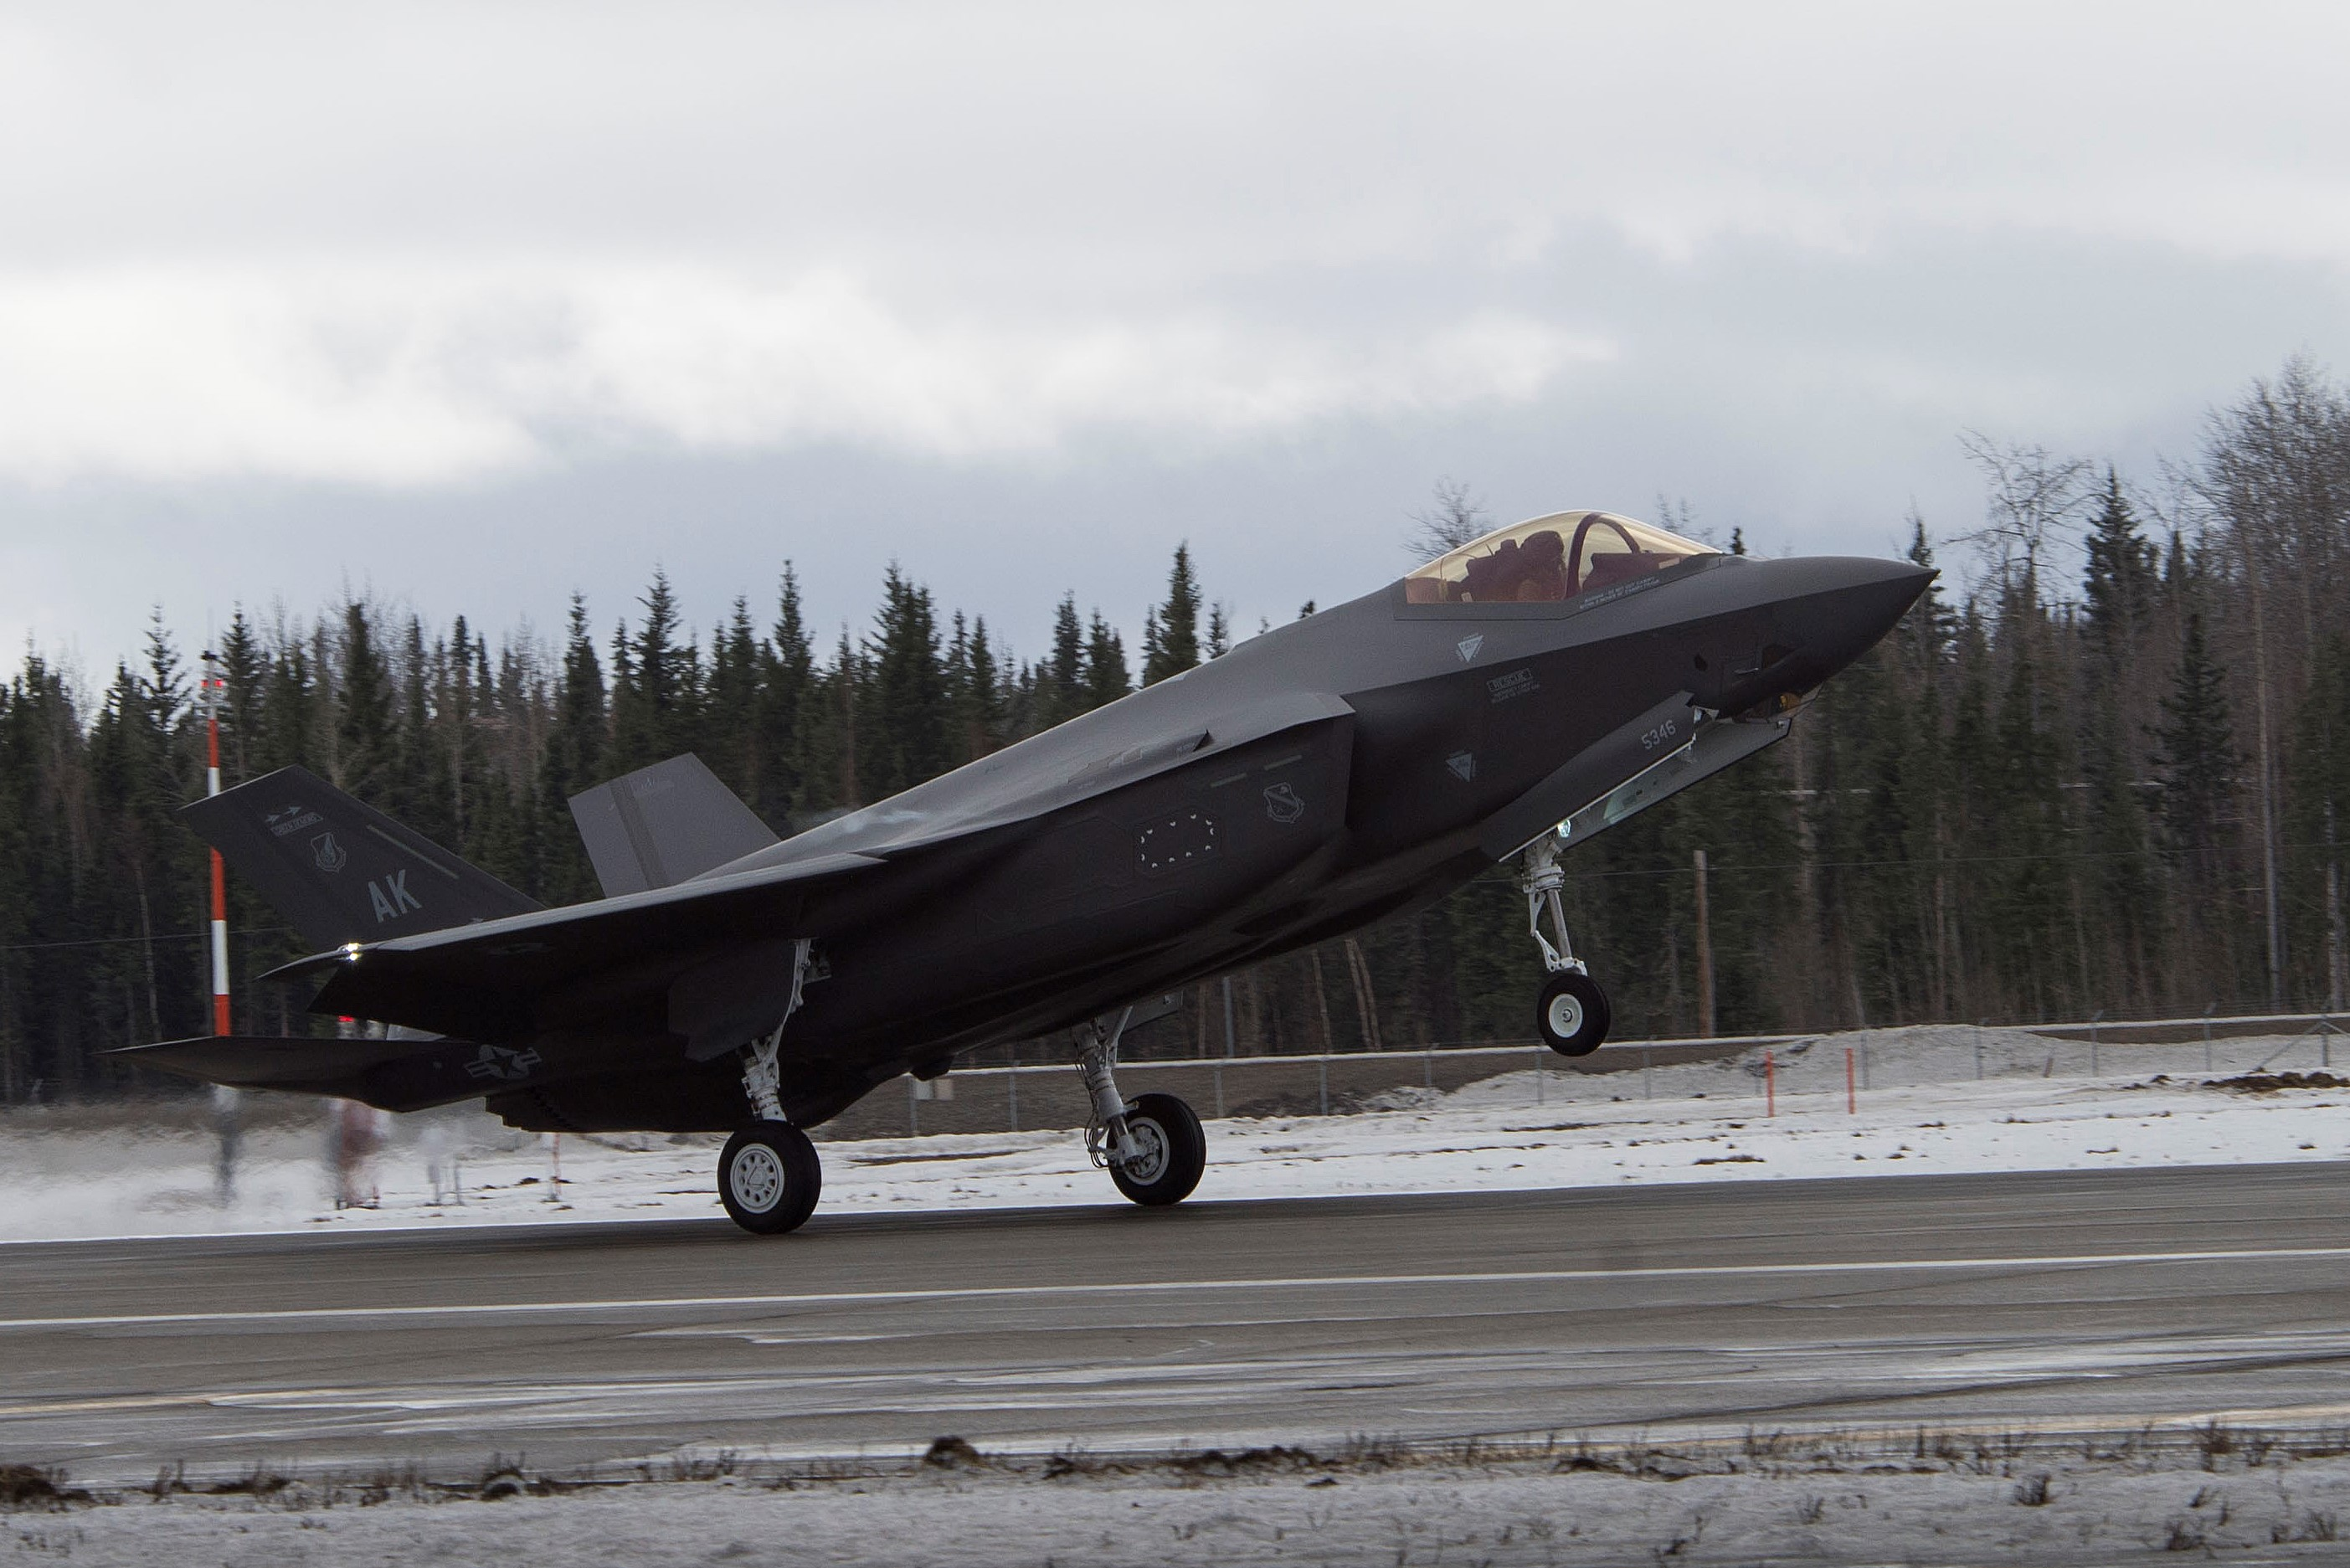 US Air Force Eielson Air Force Base Welcomes F-35A Lightning II